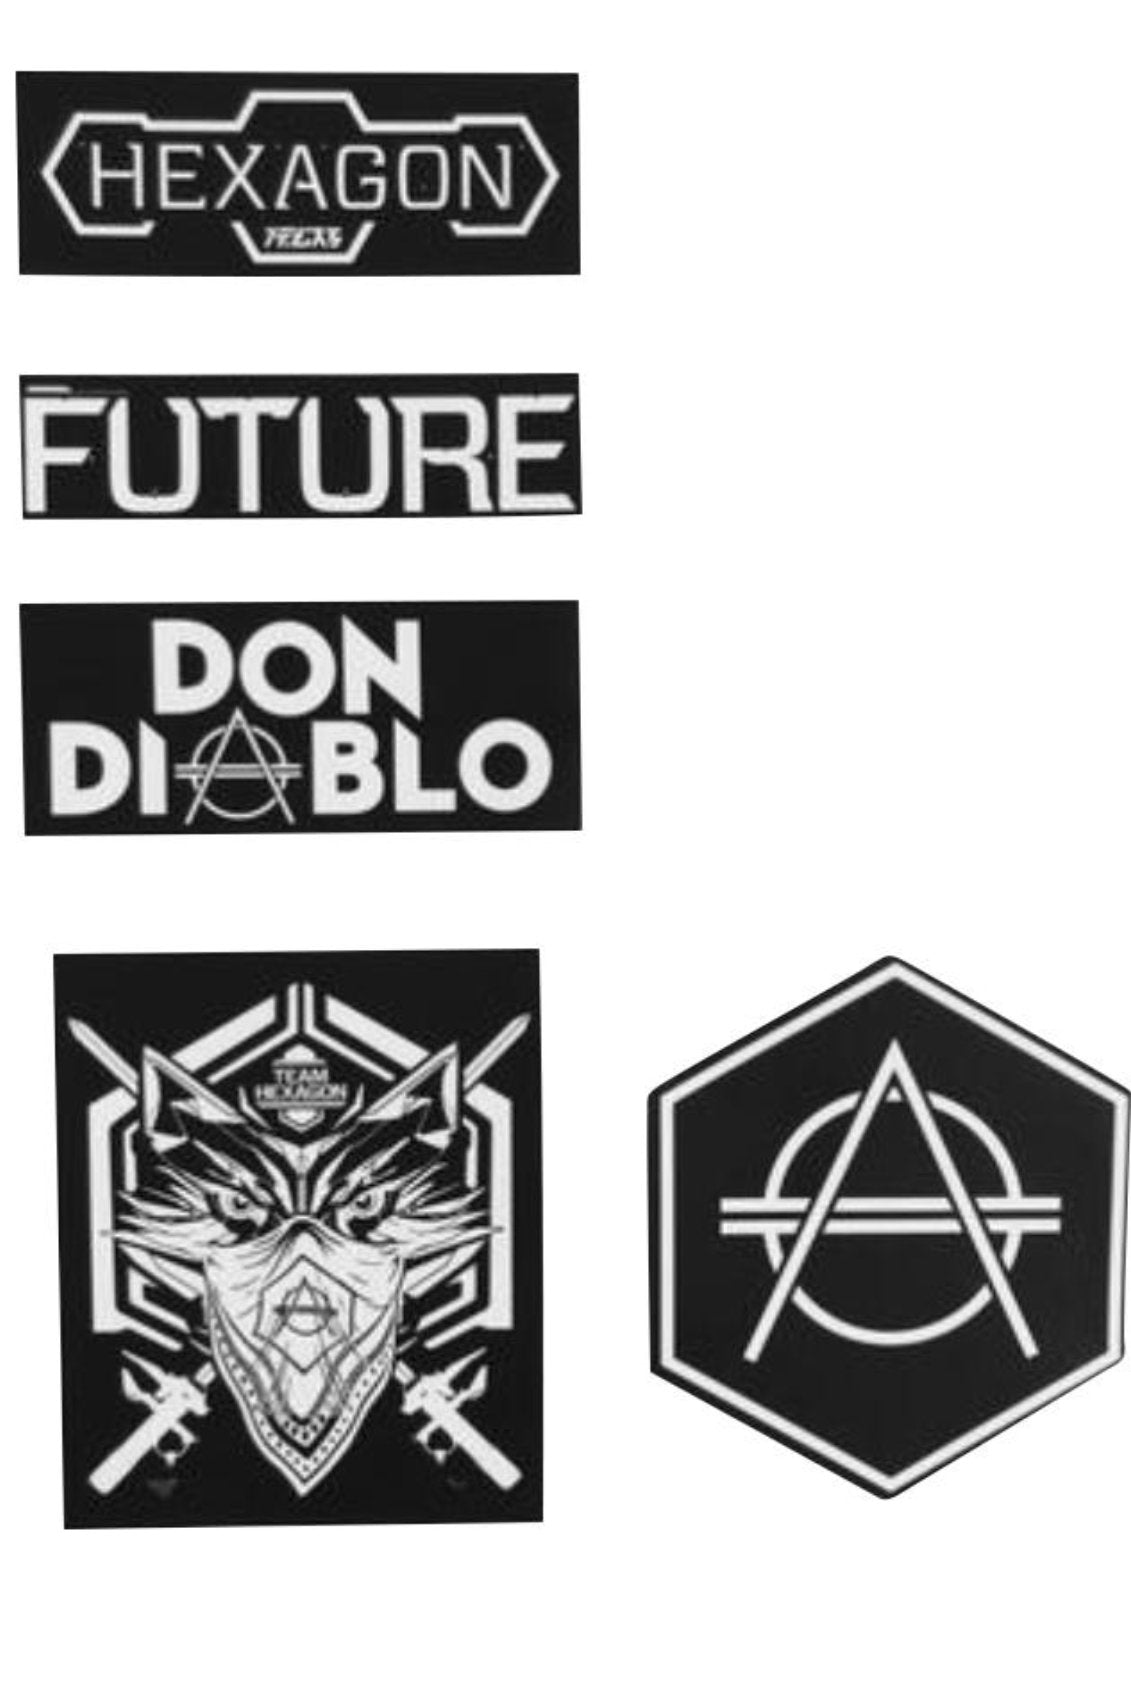 Hexagon Don Diablo 5pcs Sticker Set